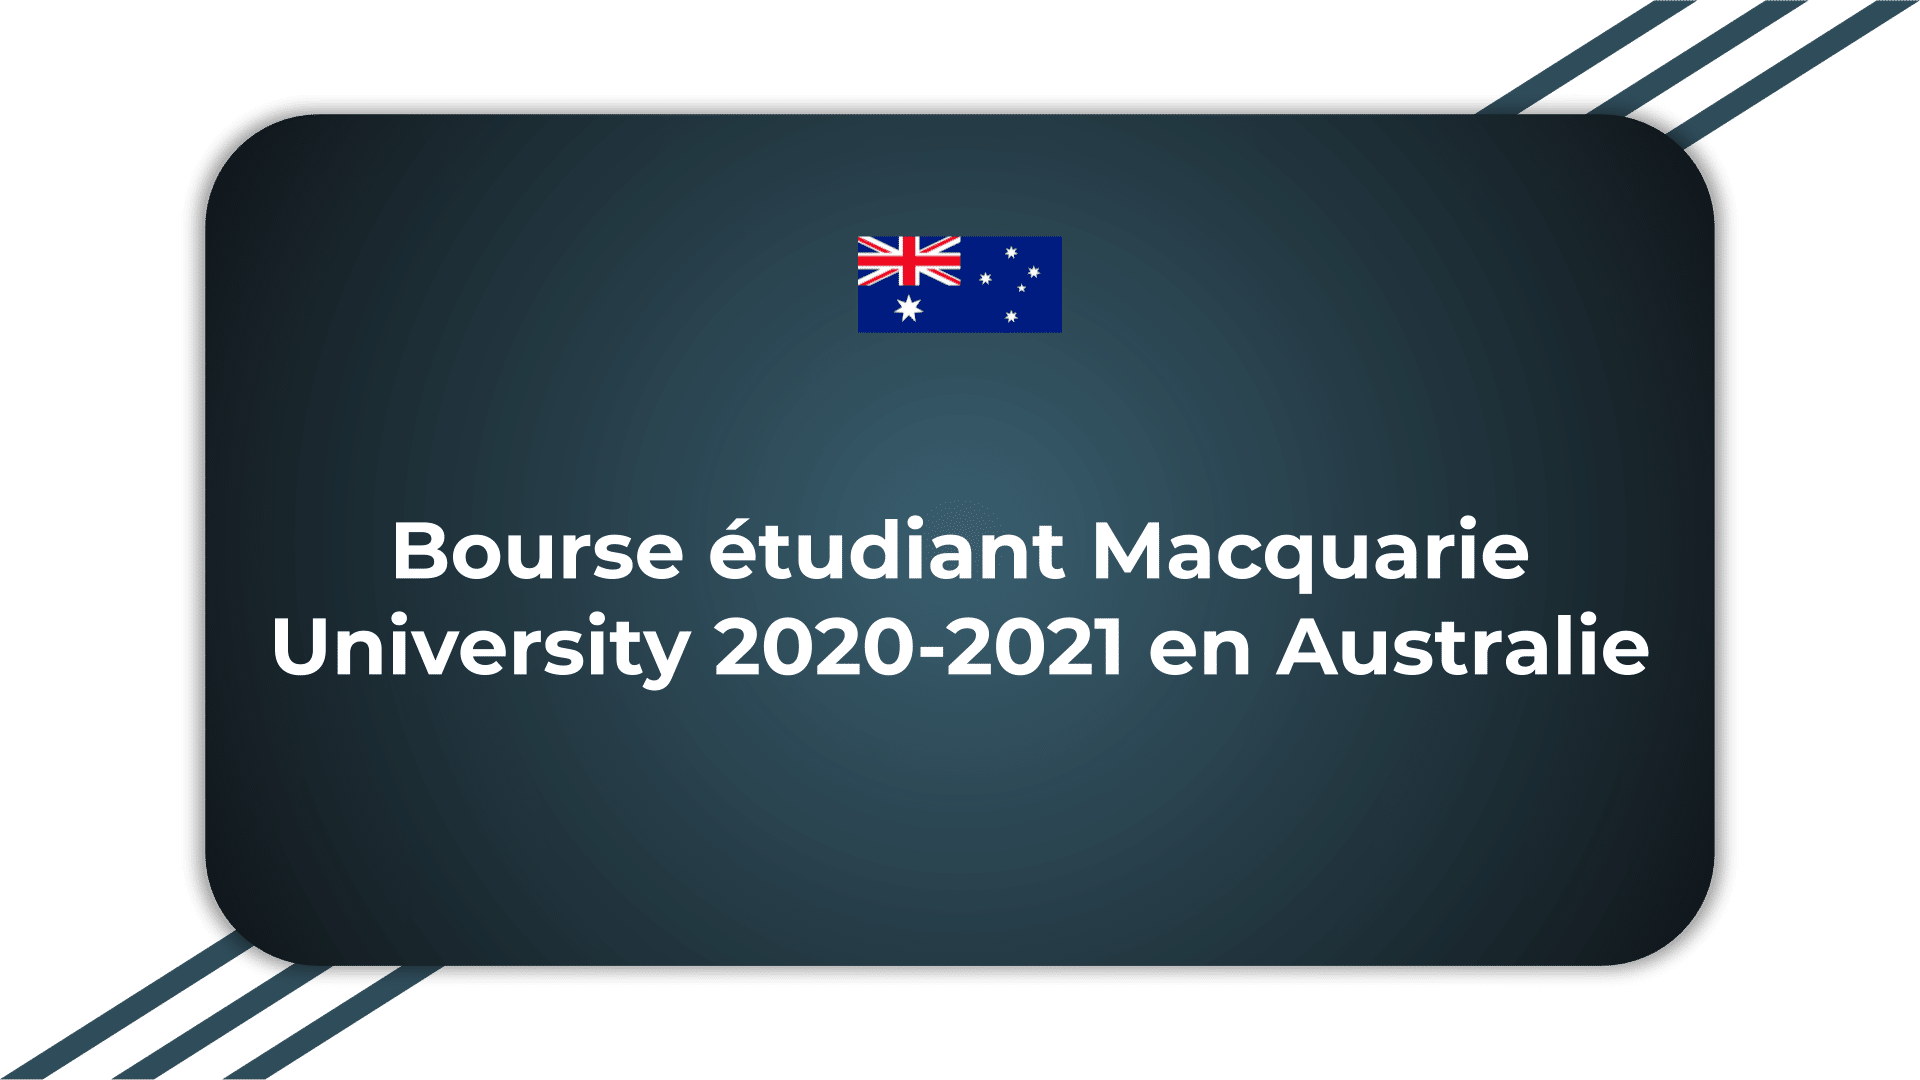 Bourse étudiant Macquarie University